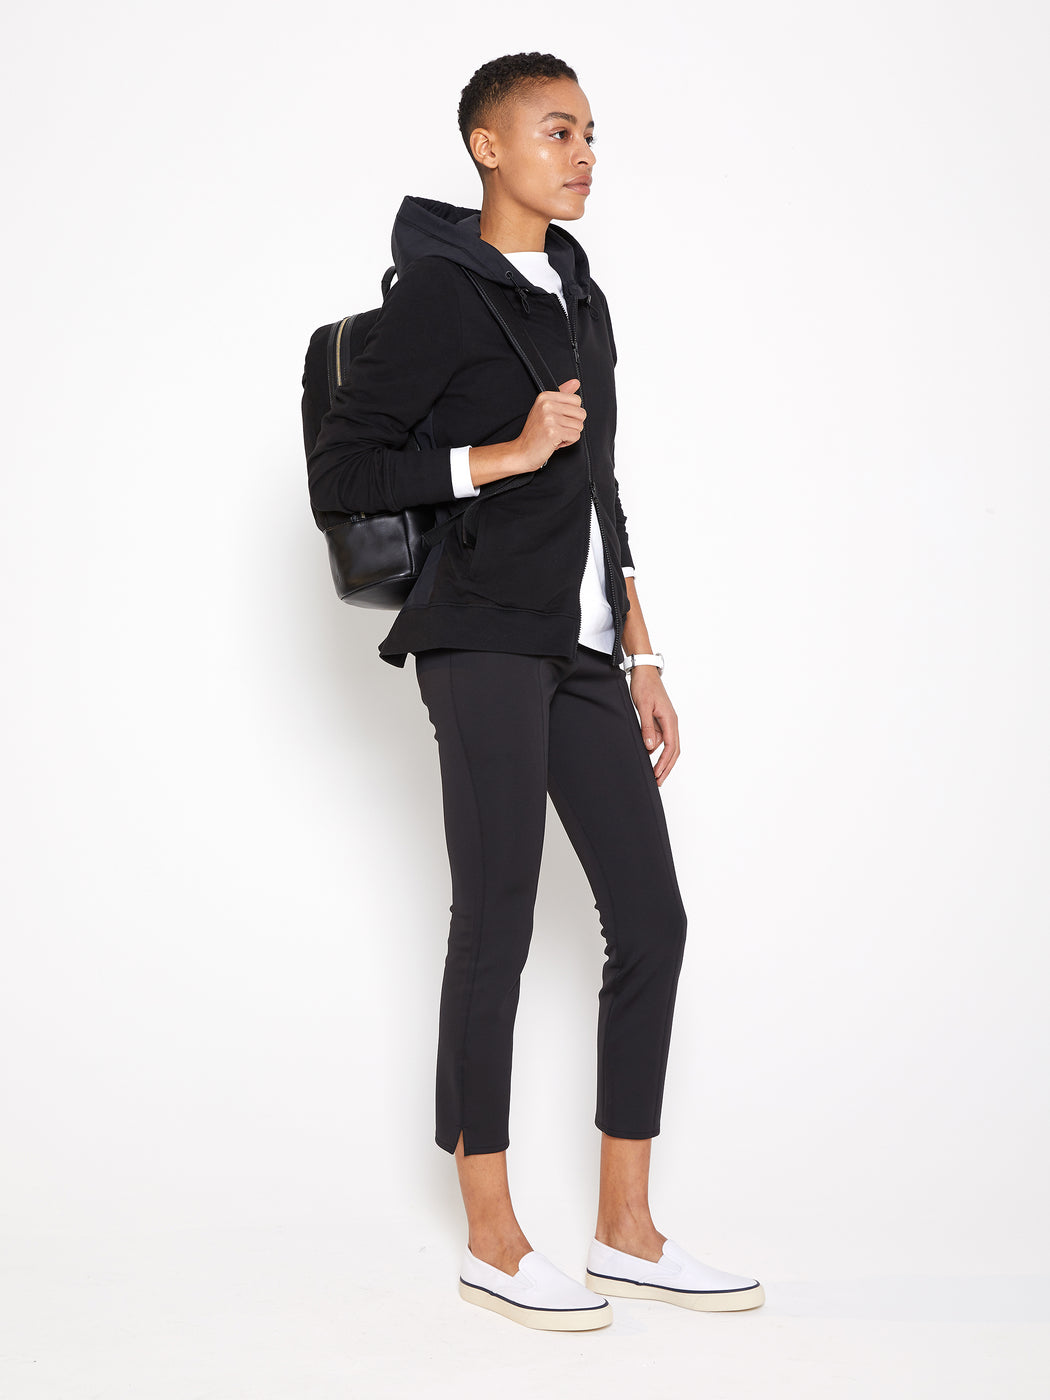 Model wearing Women Back Pleated Hoodie Zip-Up made with Organic Cotton in Black (Side View)